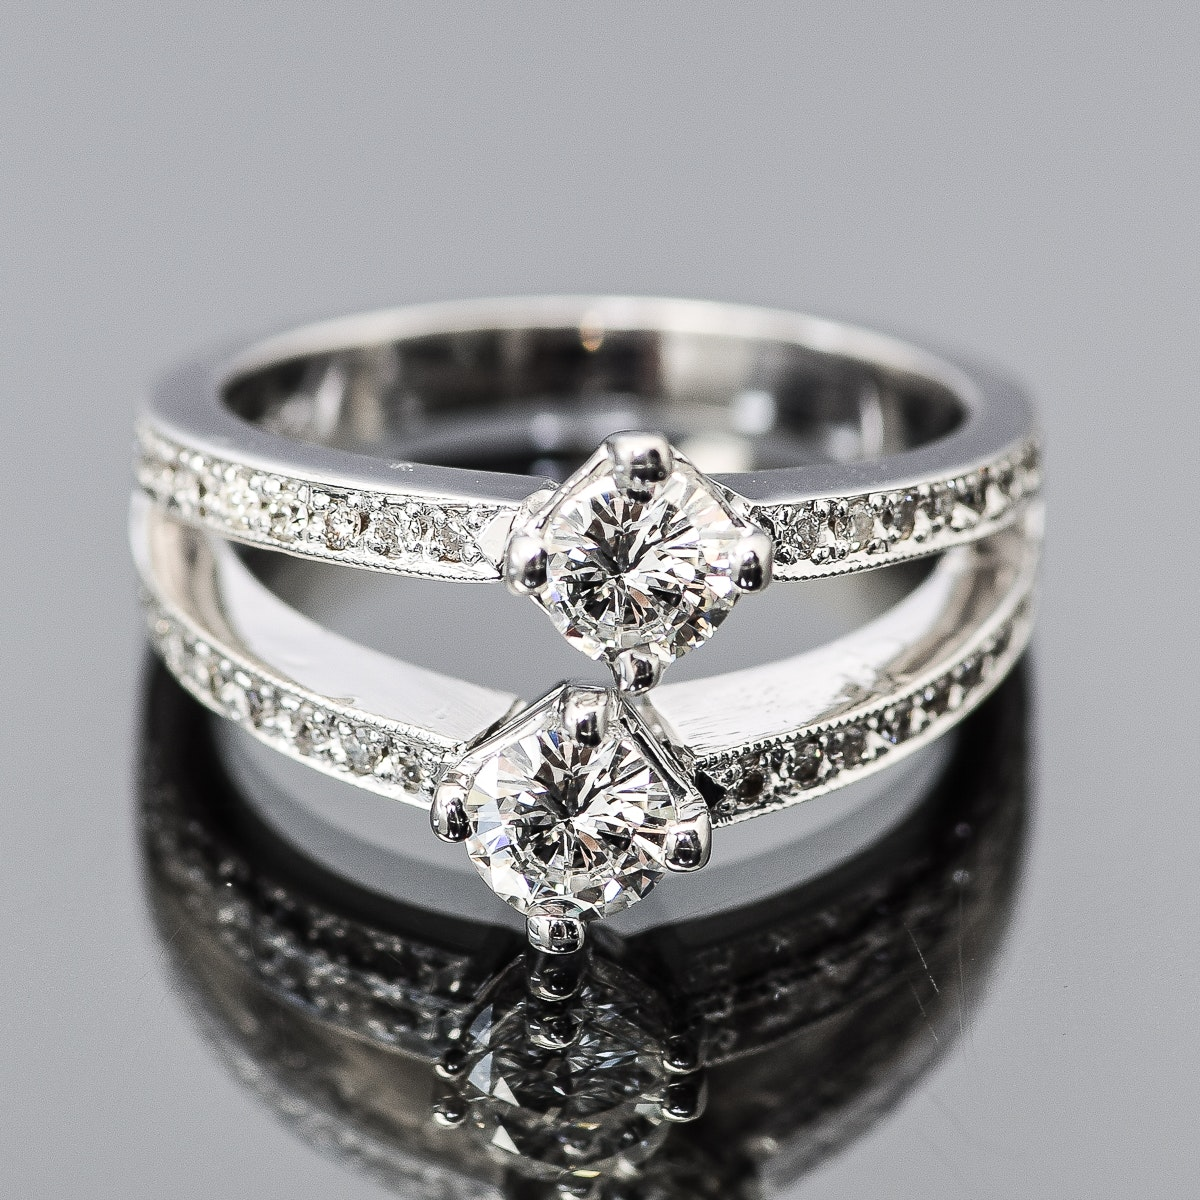 18K White Gold and 1.22 CTW Diamond Double Band Ring